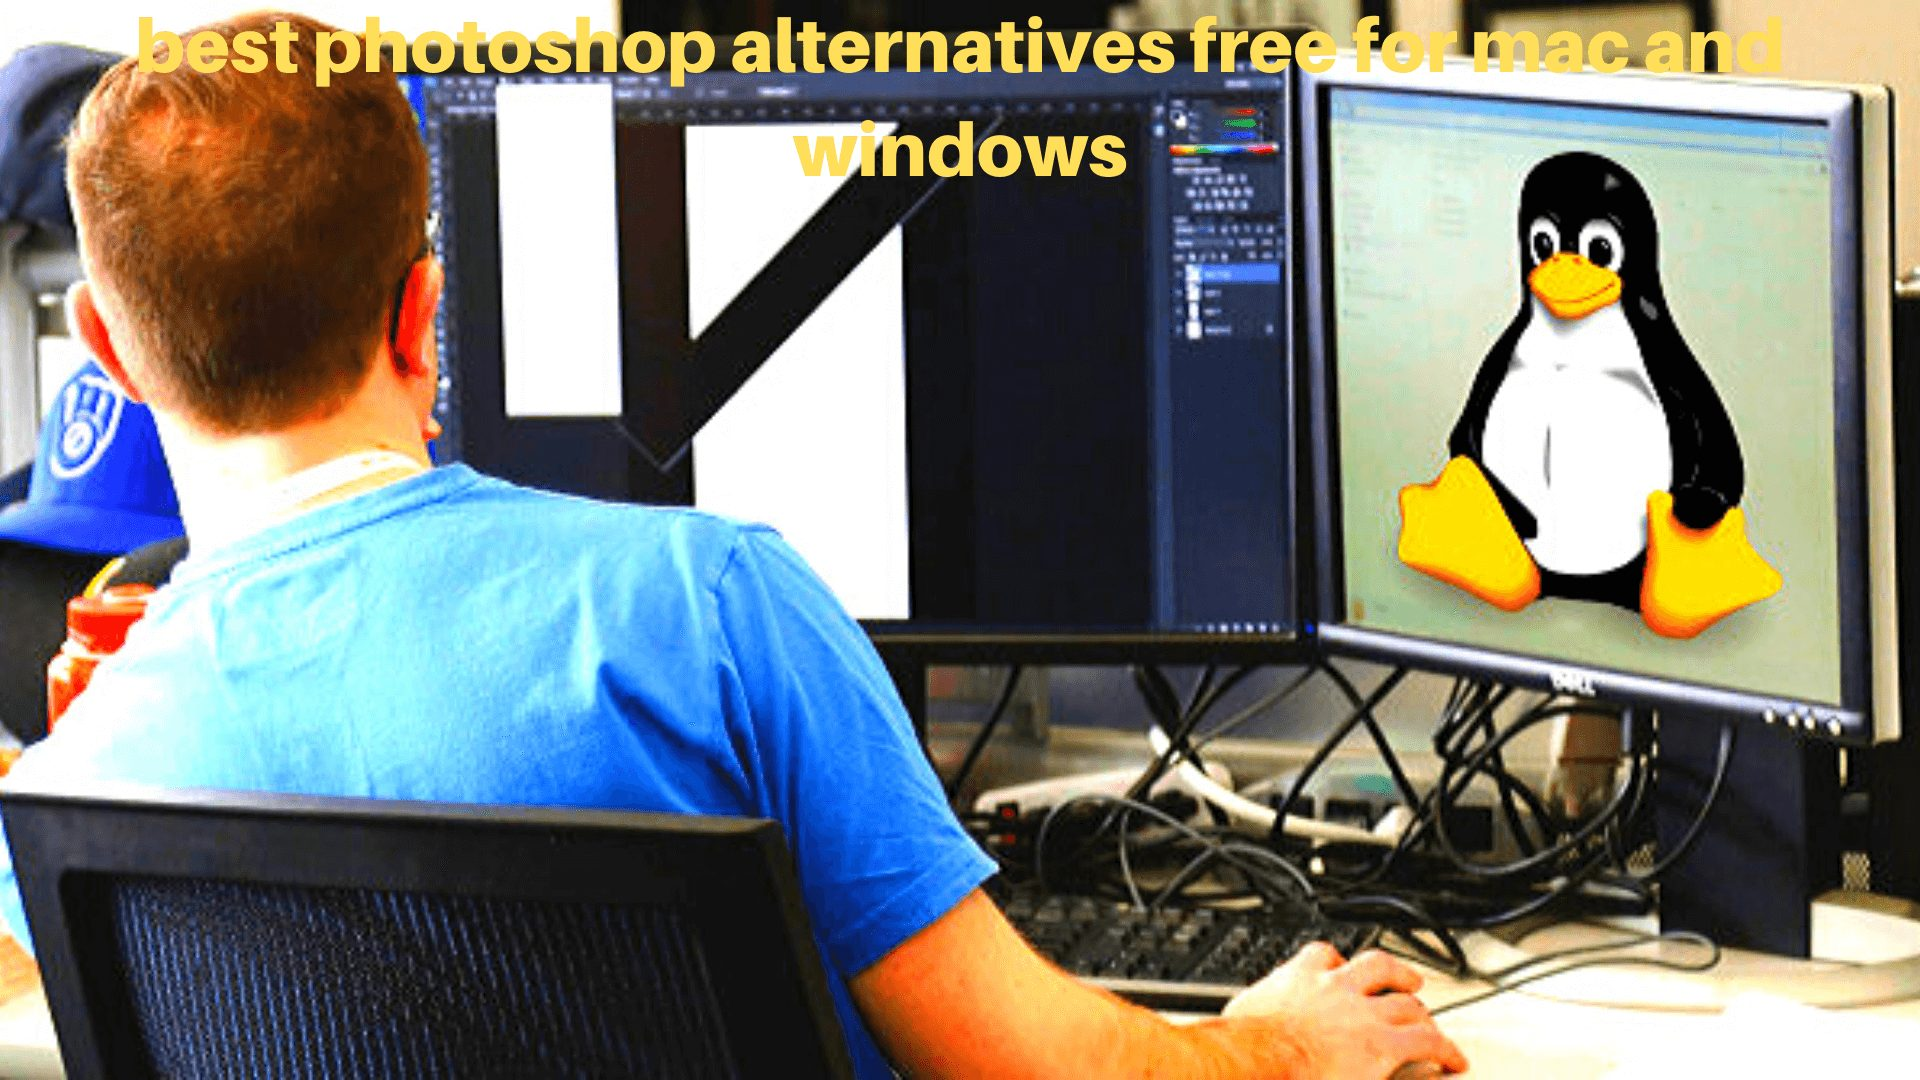 best photoshop alternatives free for mac and windows